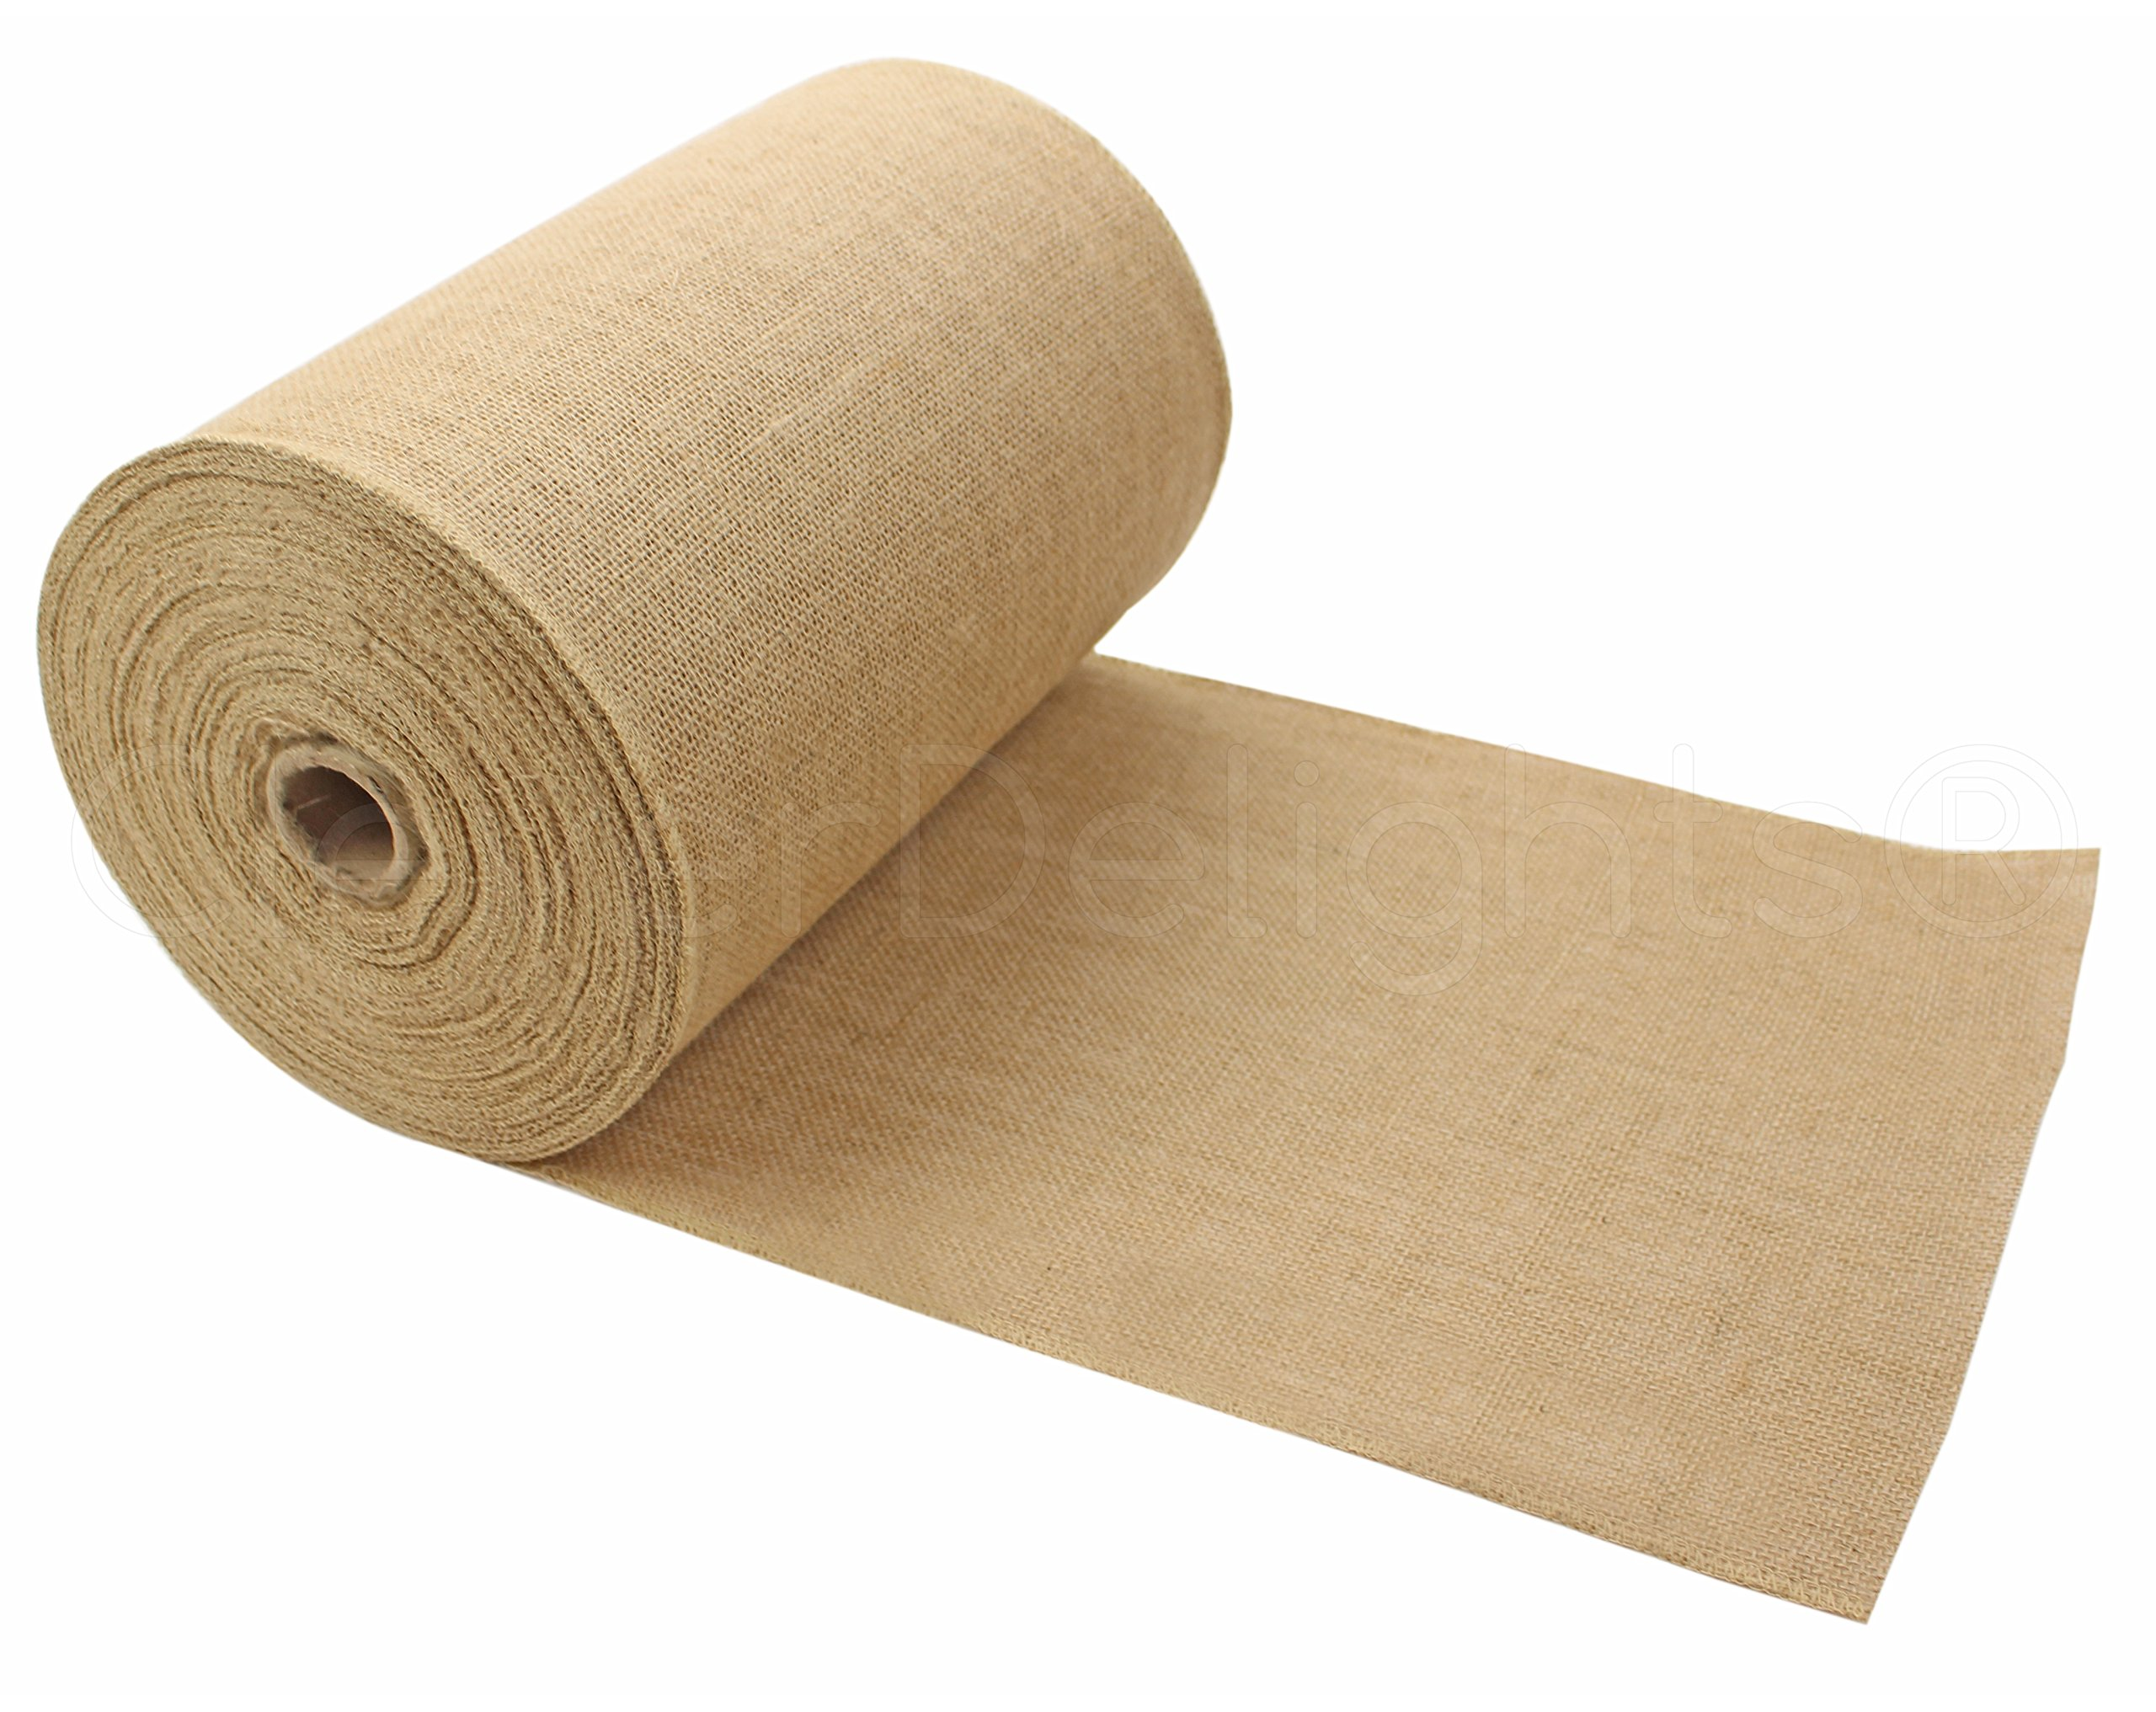 CleverDelights 12'' Premium Burlap Roll - 50 Yards - No-Fray Finished Edges - Natural Jute Burlap Fabric